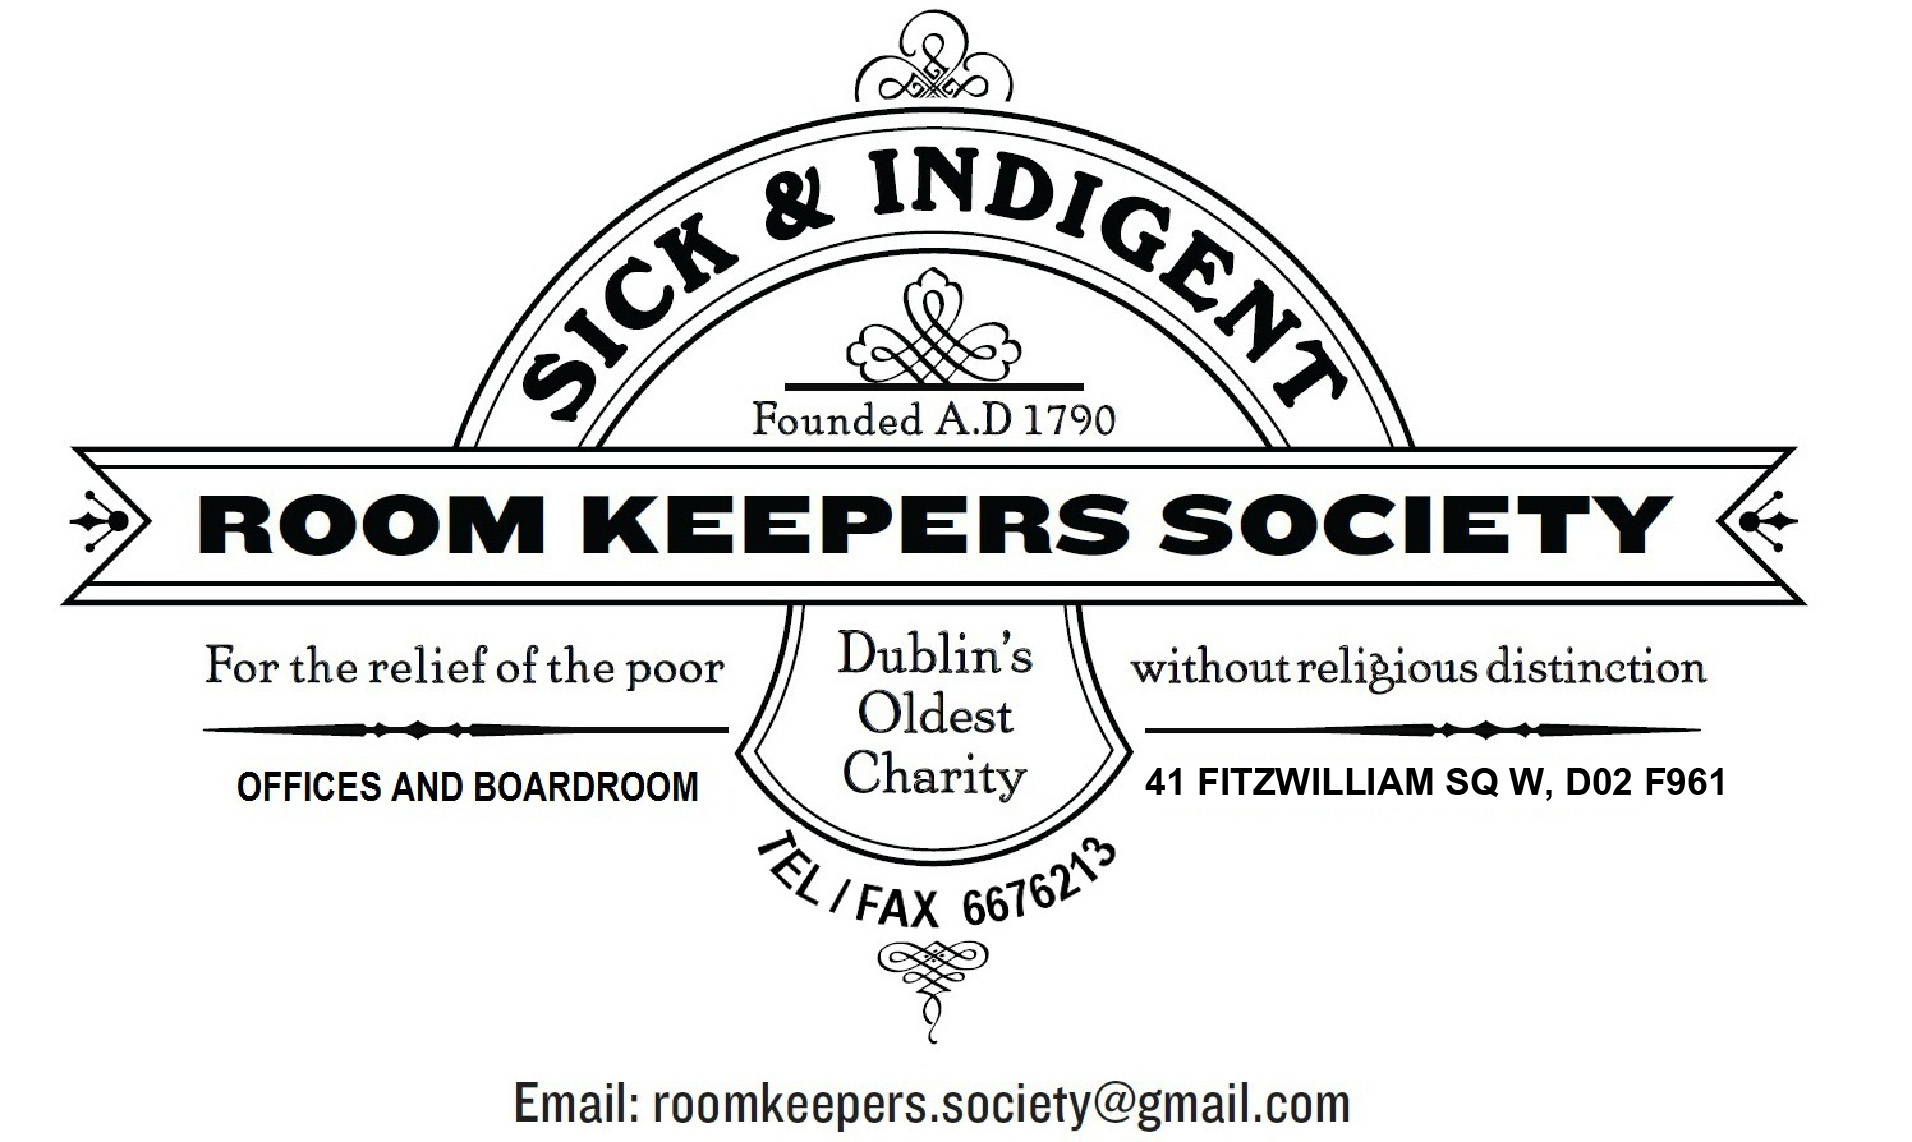 The Sick and Indigent Roomkeepers' Society